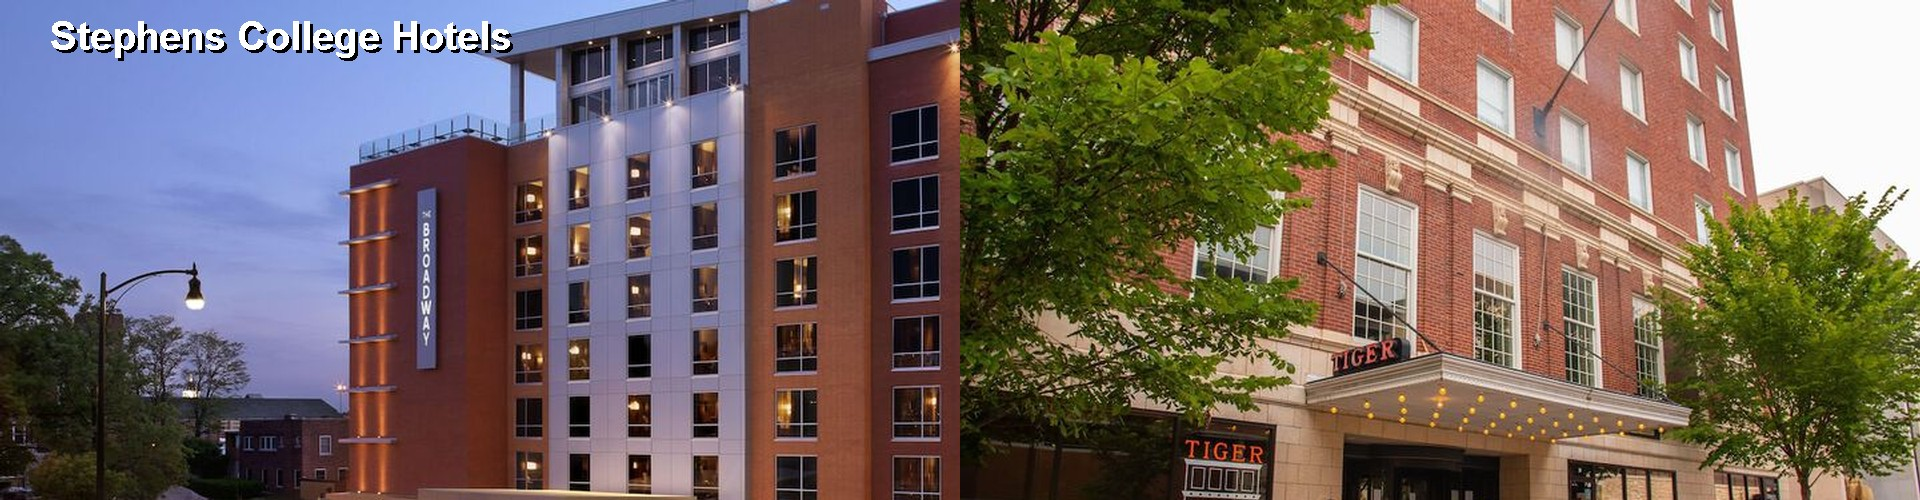 5 Best Hotels near Stephens College